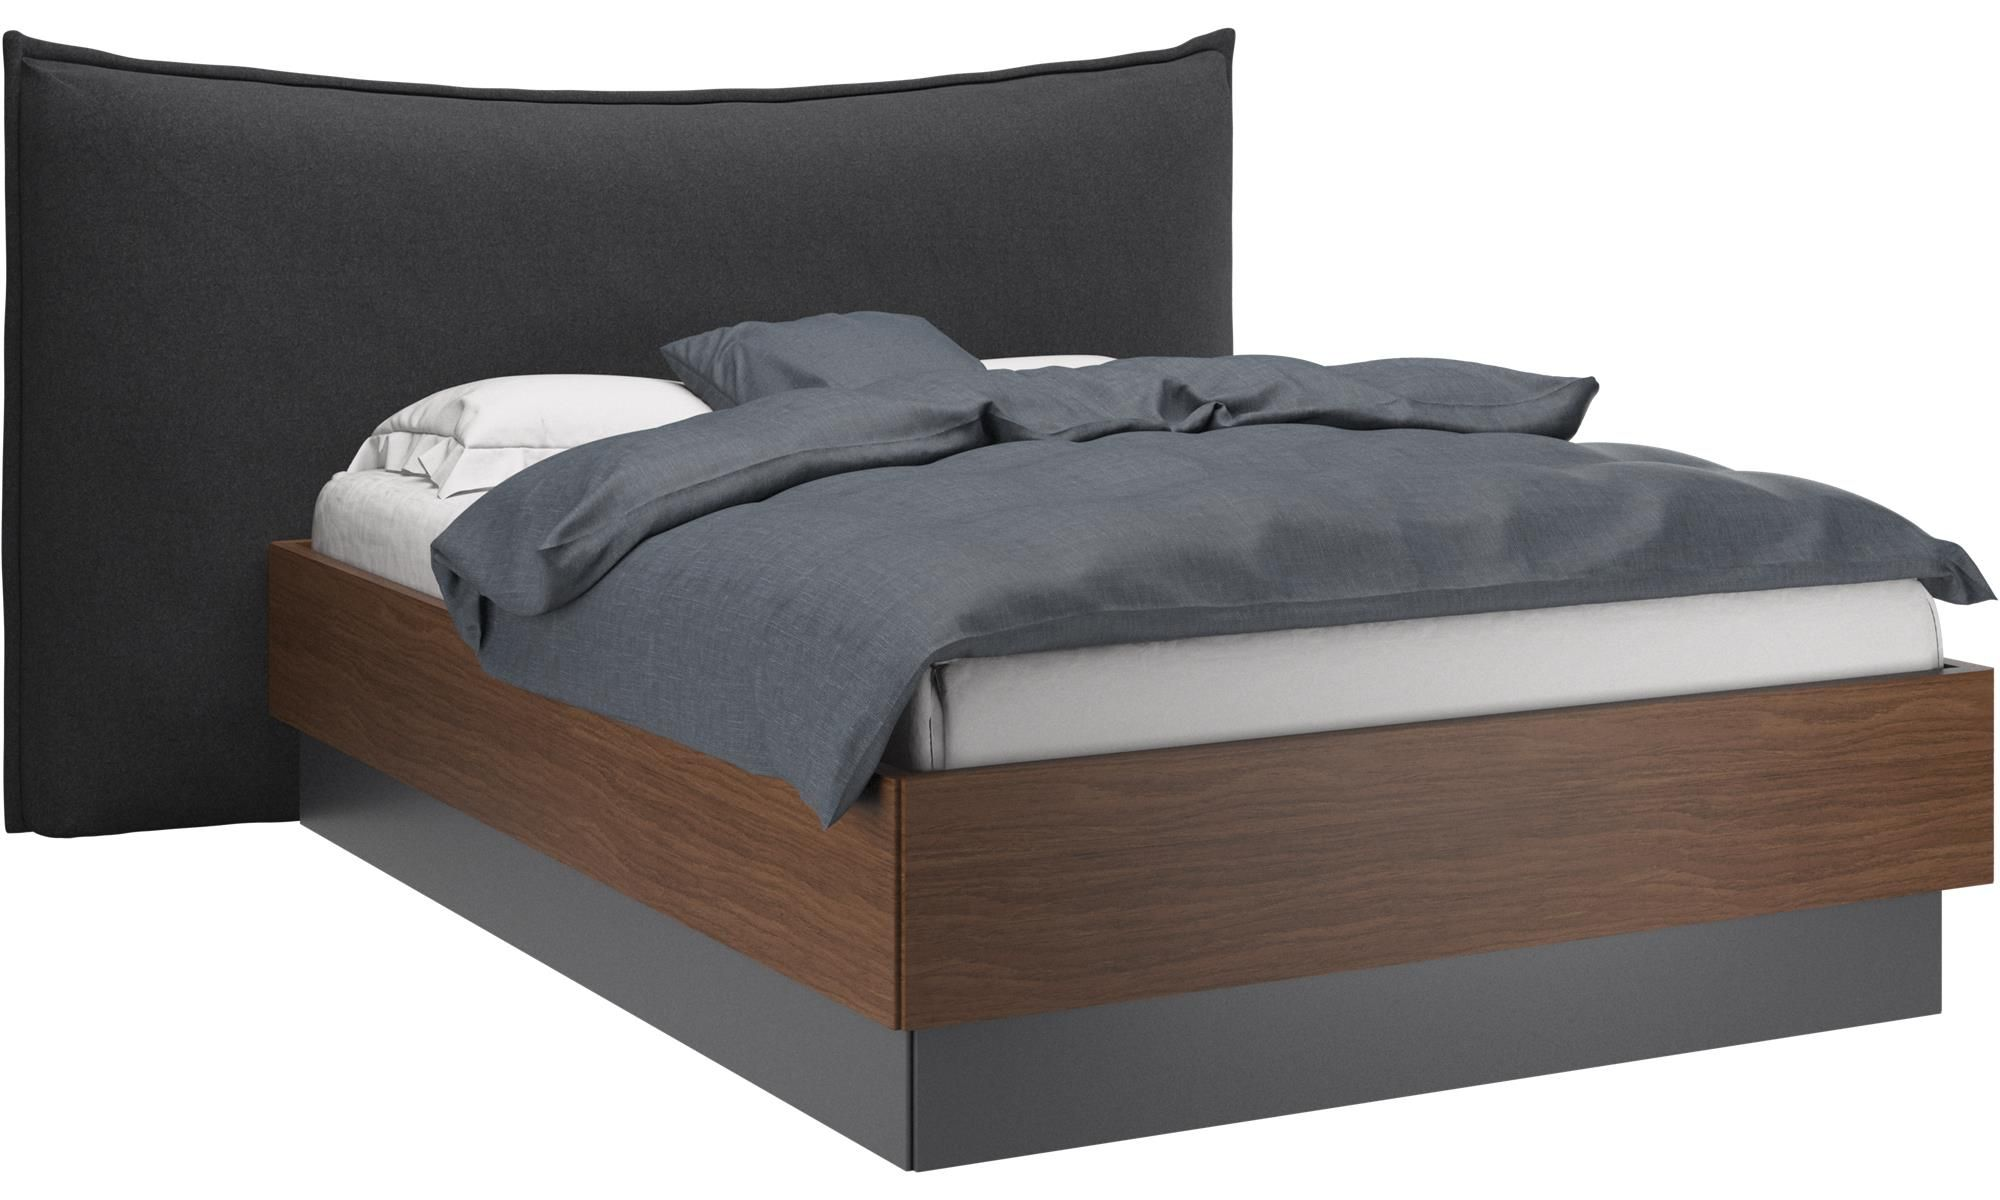 Gent Storage Bed With Lift Up Frame And Slats - Boconcept